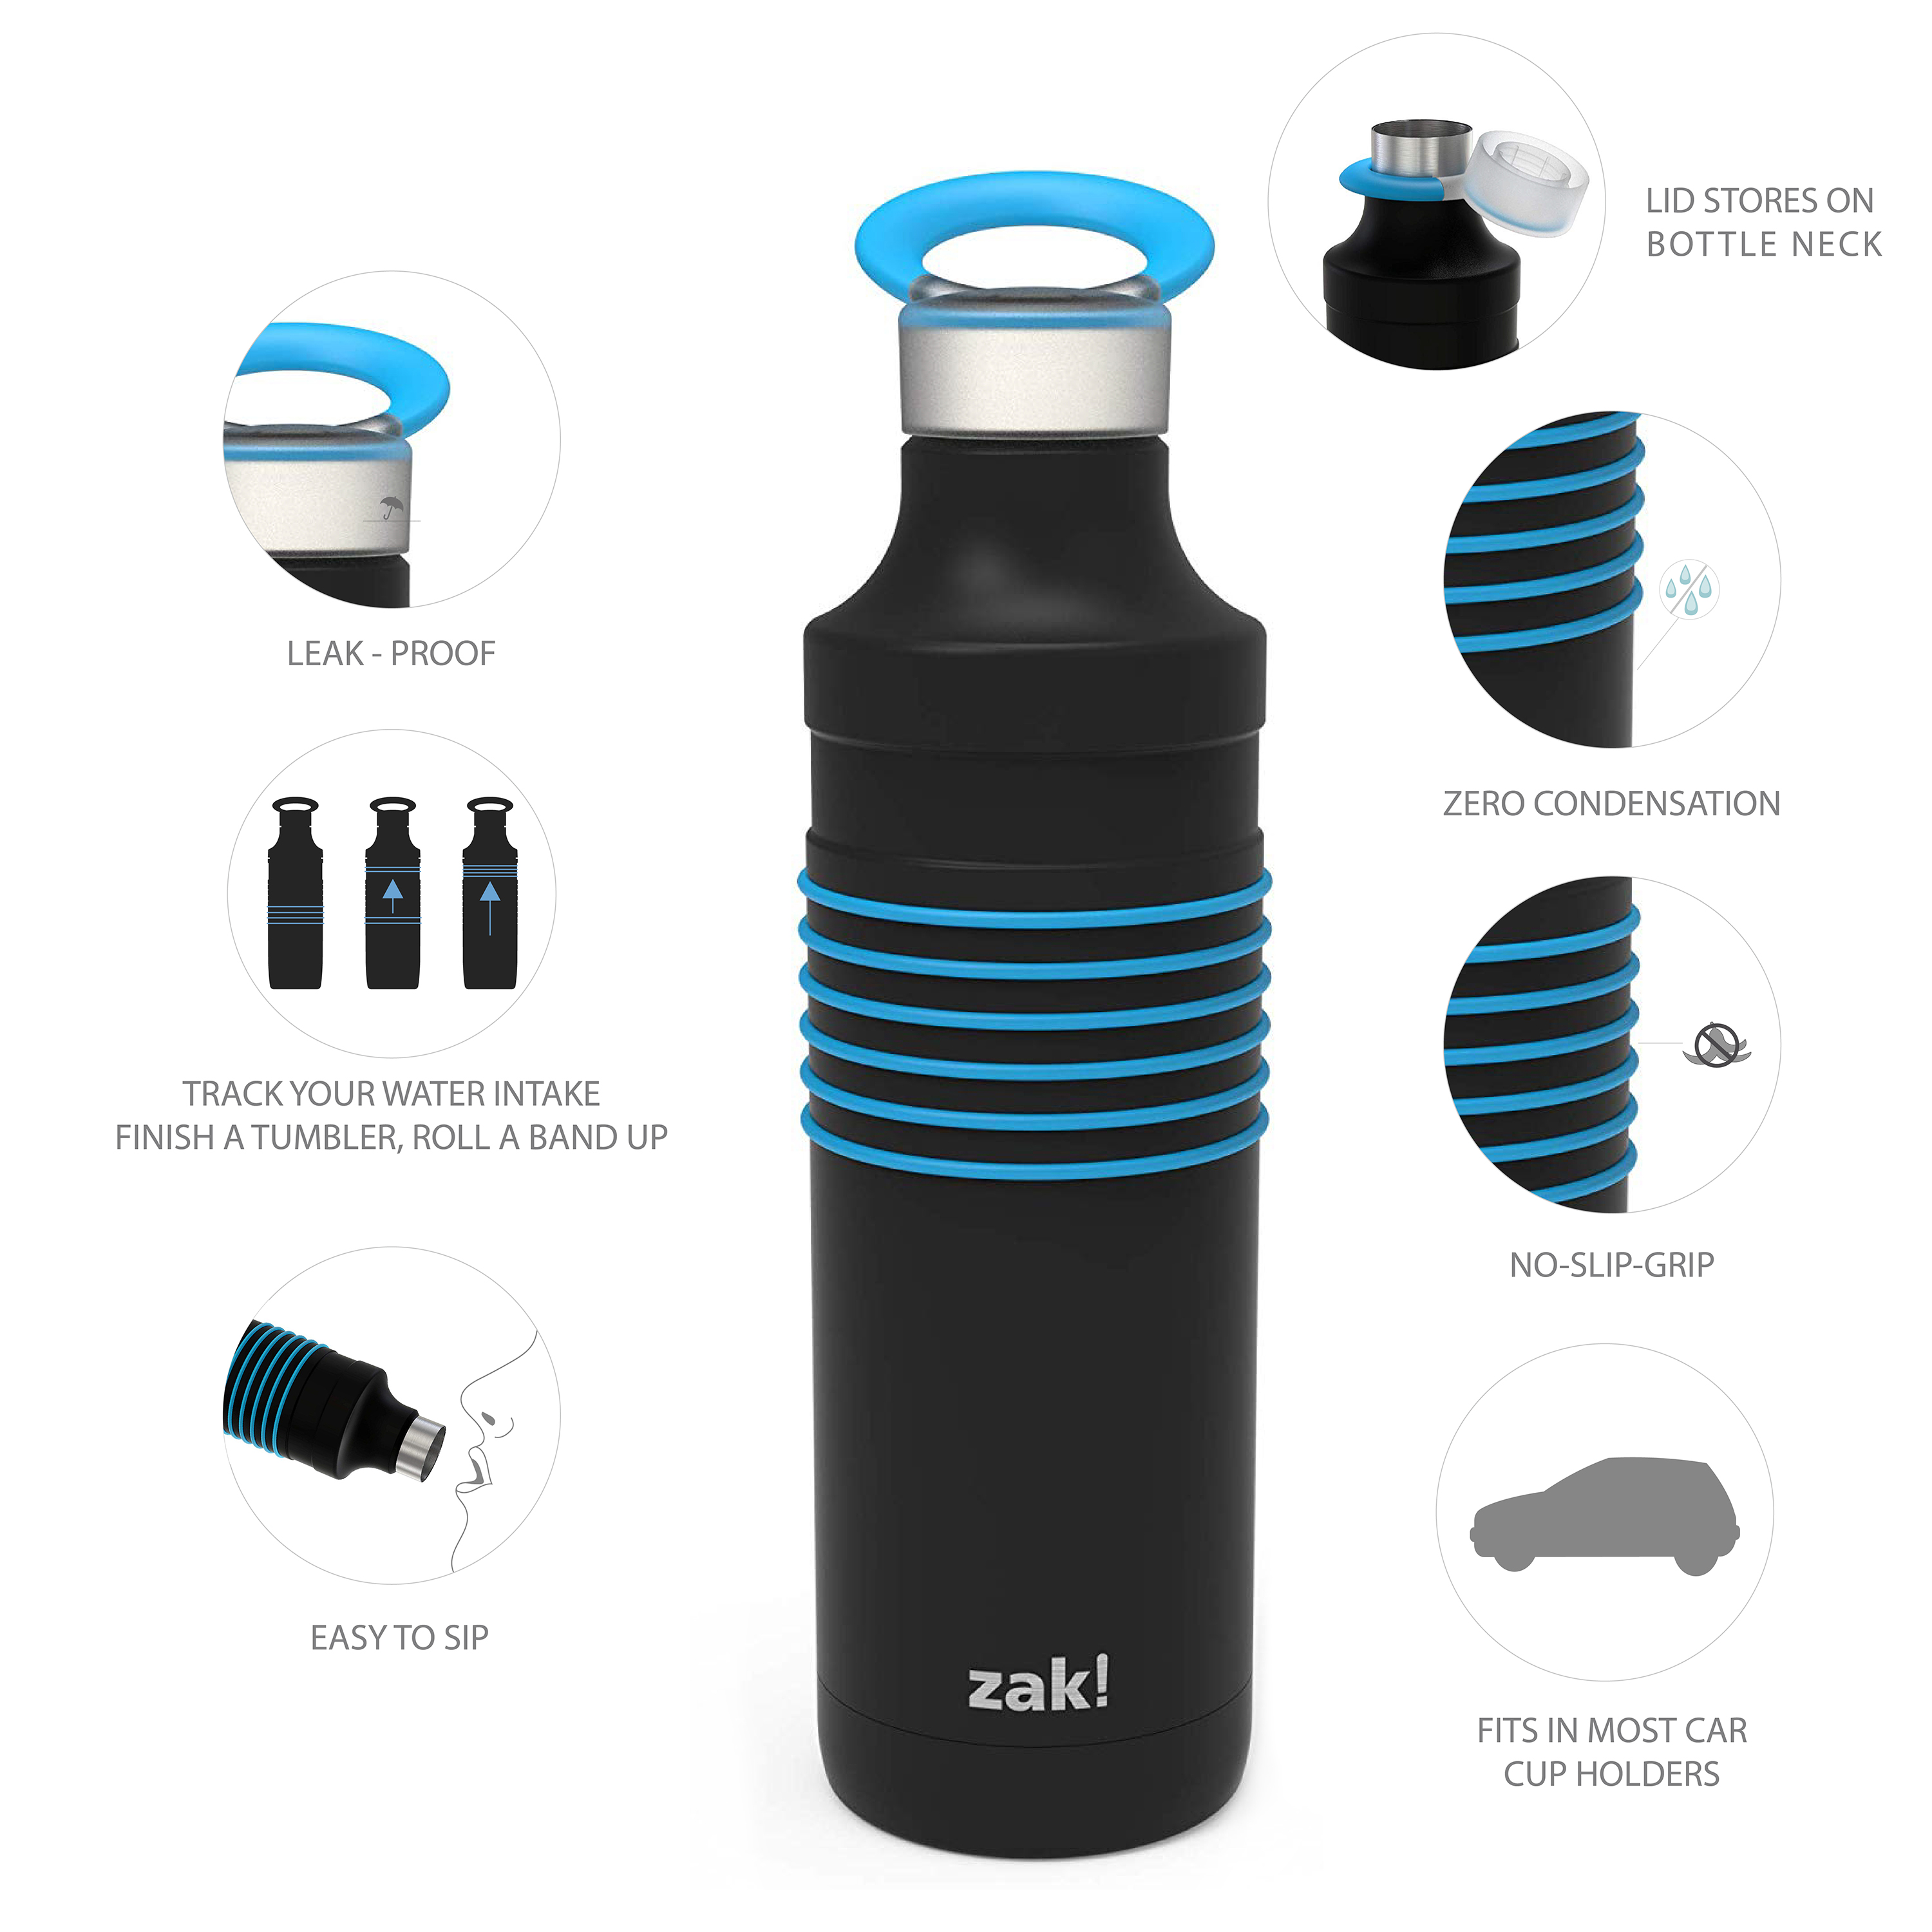 HydraTrak 22 ounce Vacuum Insulated Stainless Steel Tumbler, Black with Blue Rings slideshow image 6